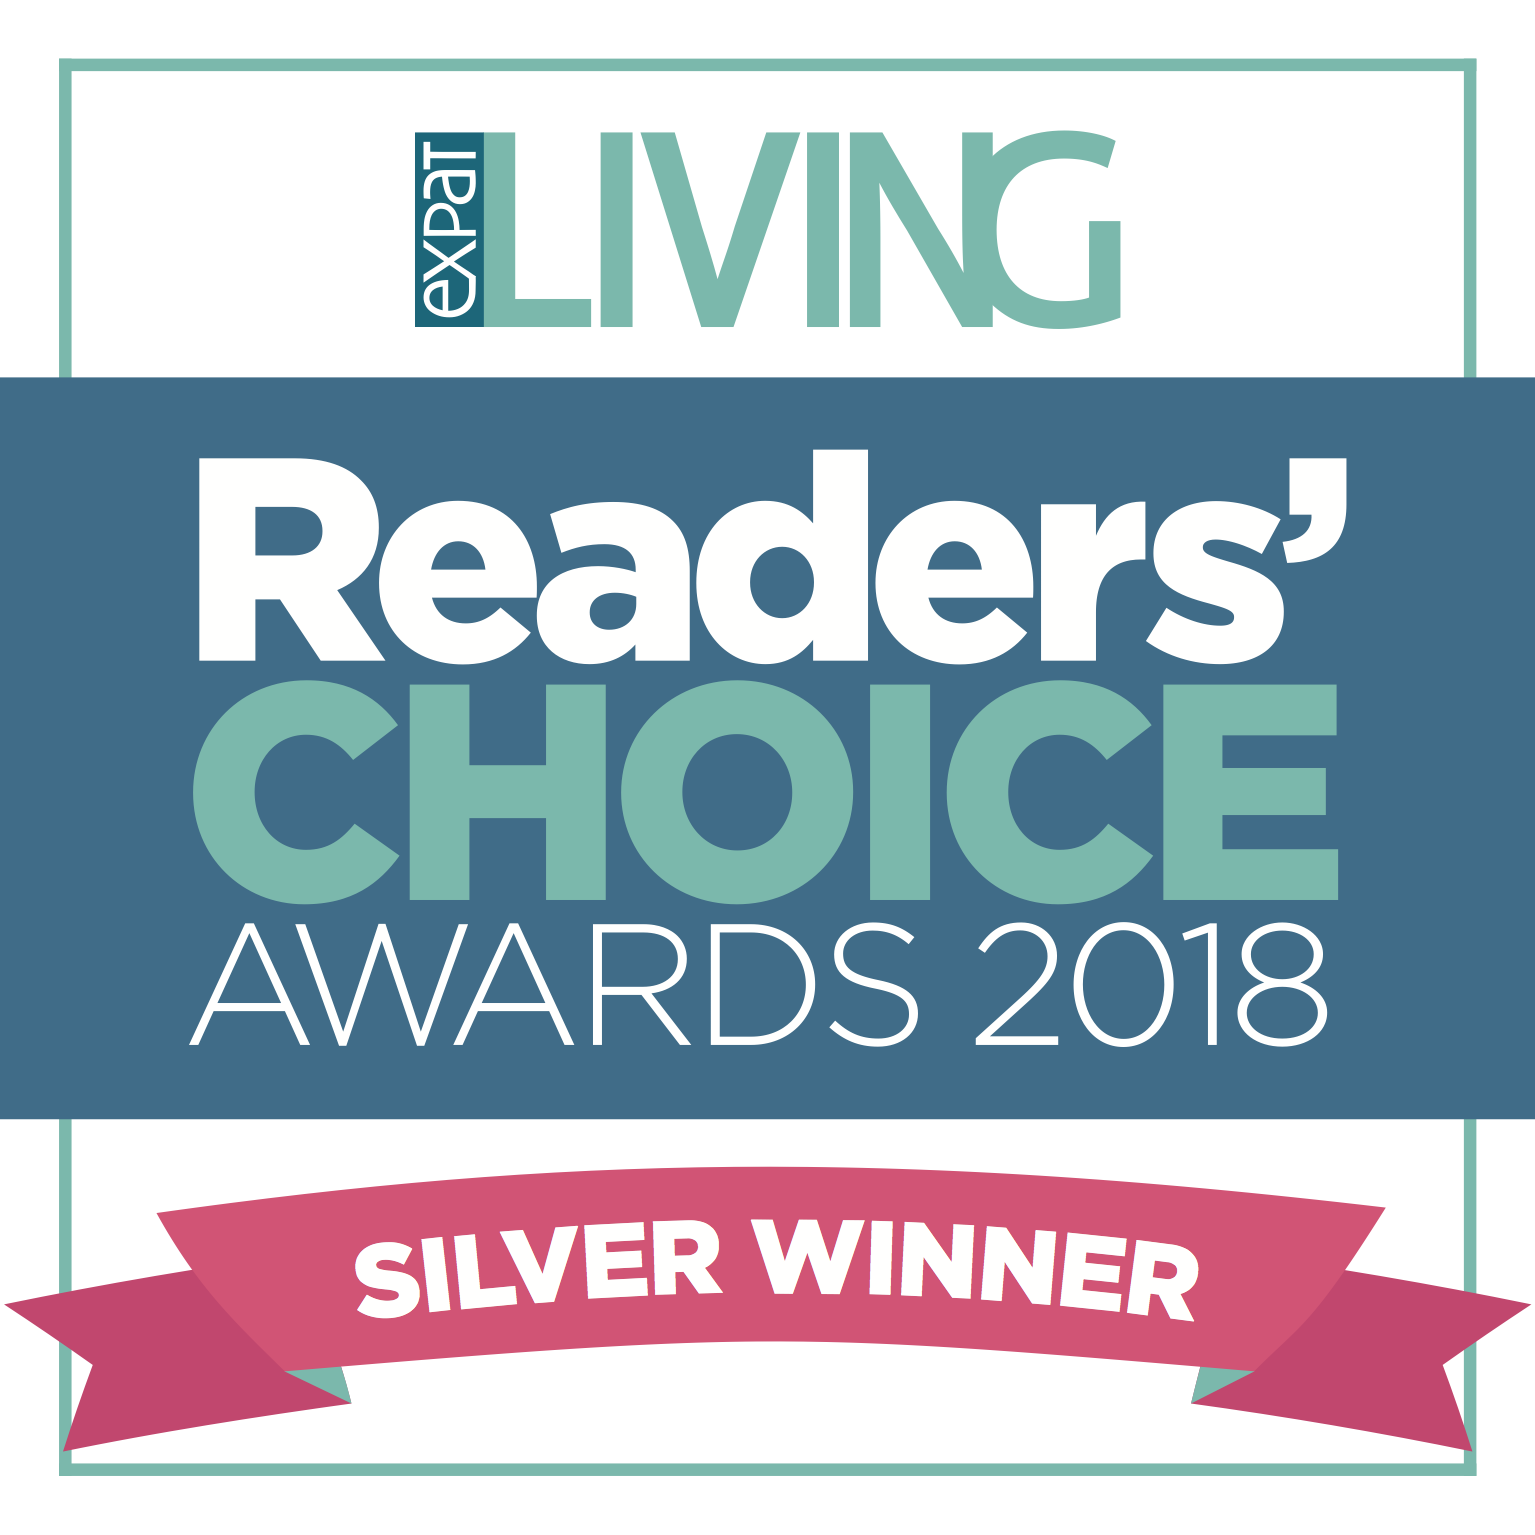 Silver winner of the Reader's Choice Awards 2018 for Employment Agency